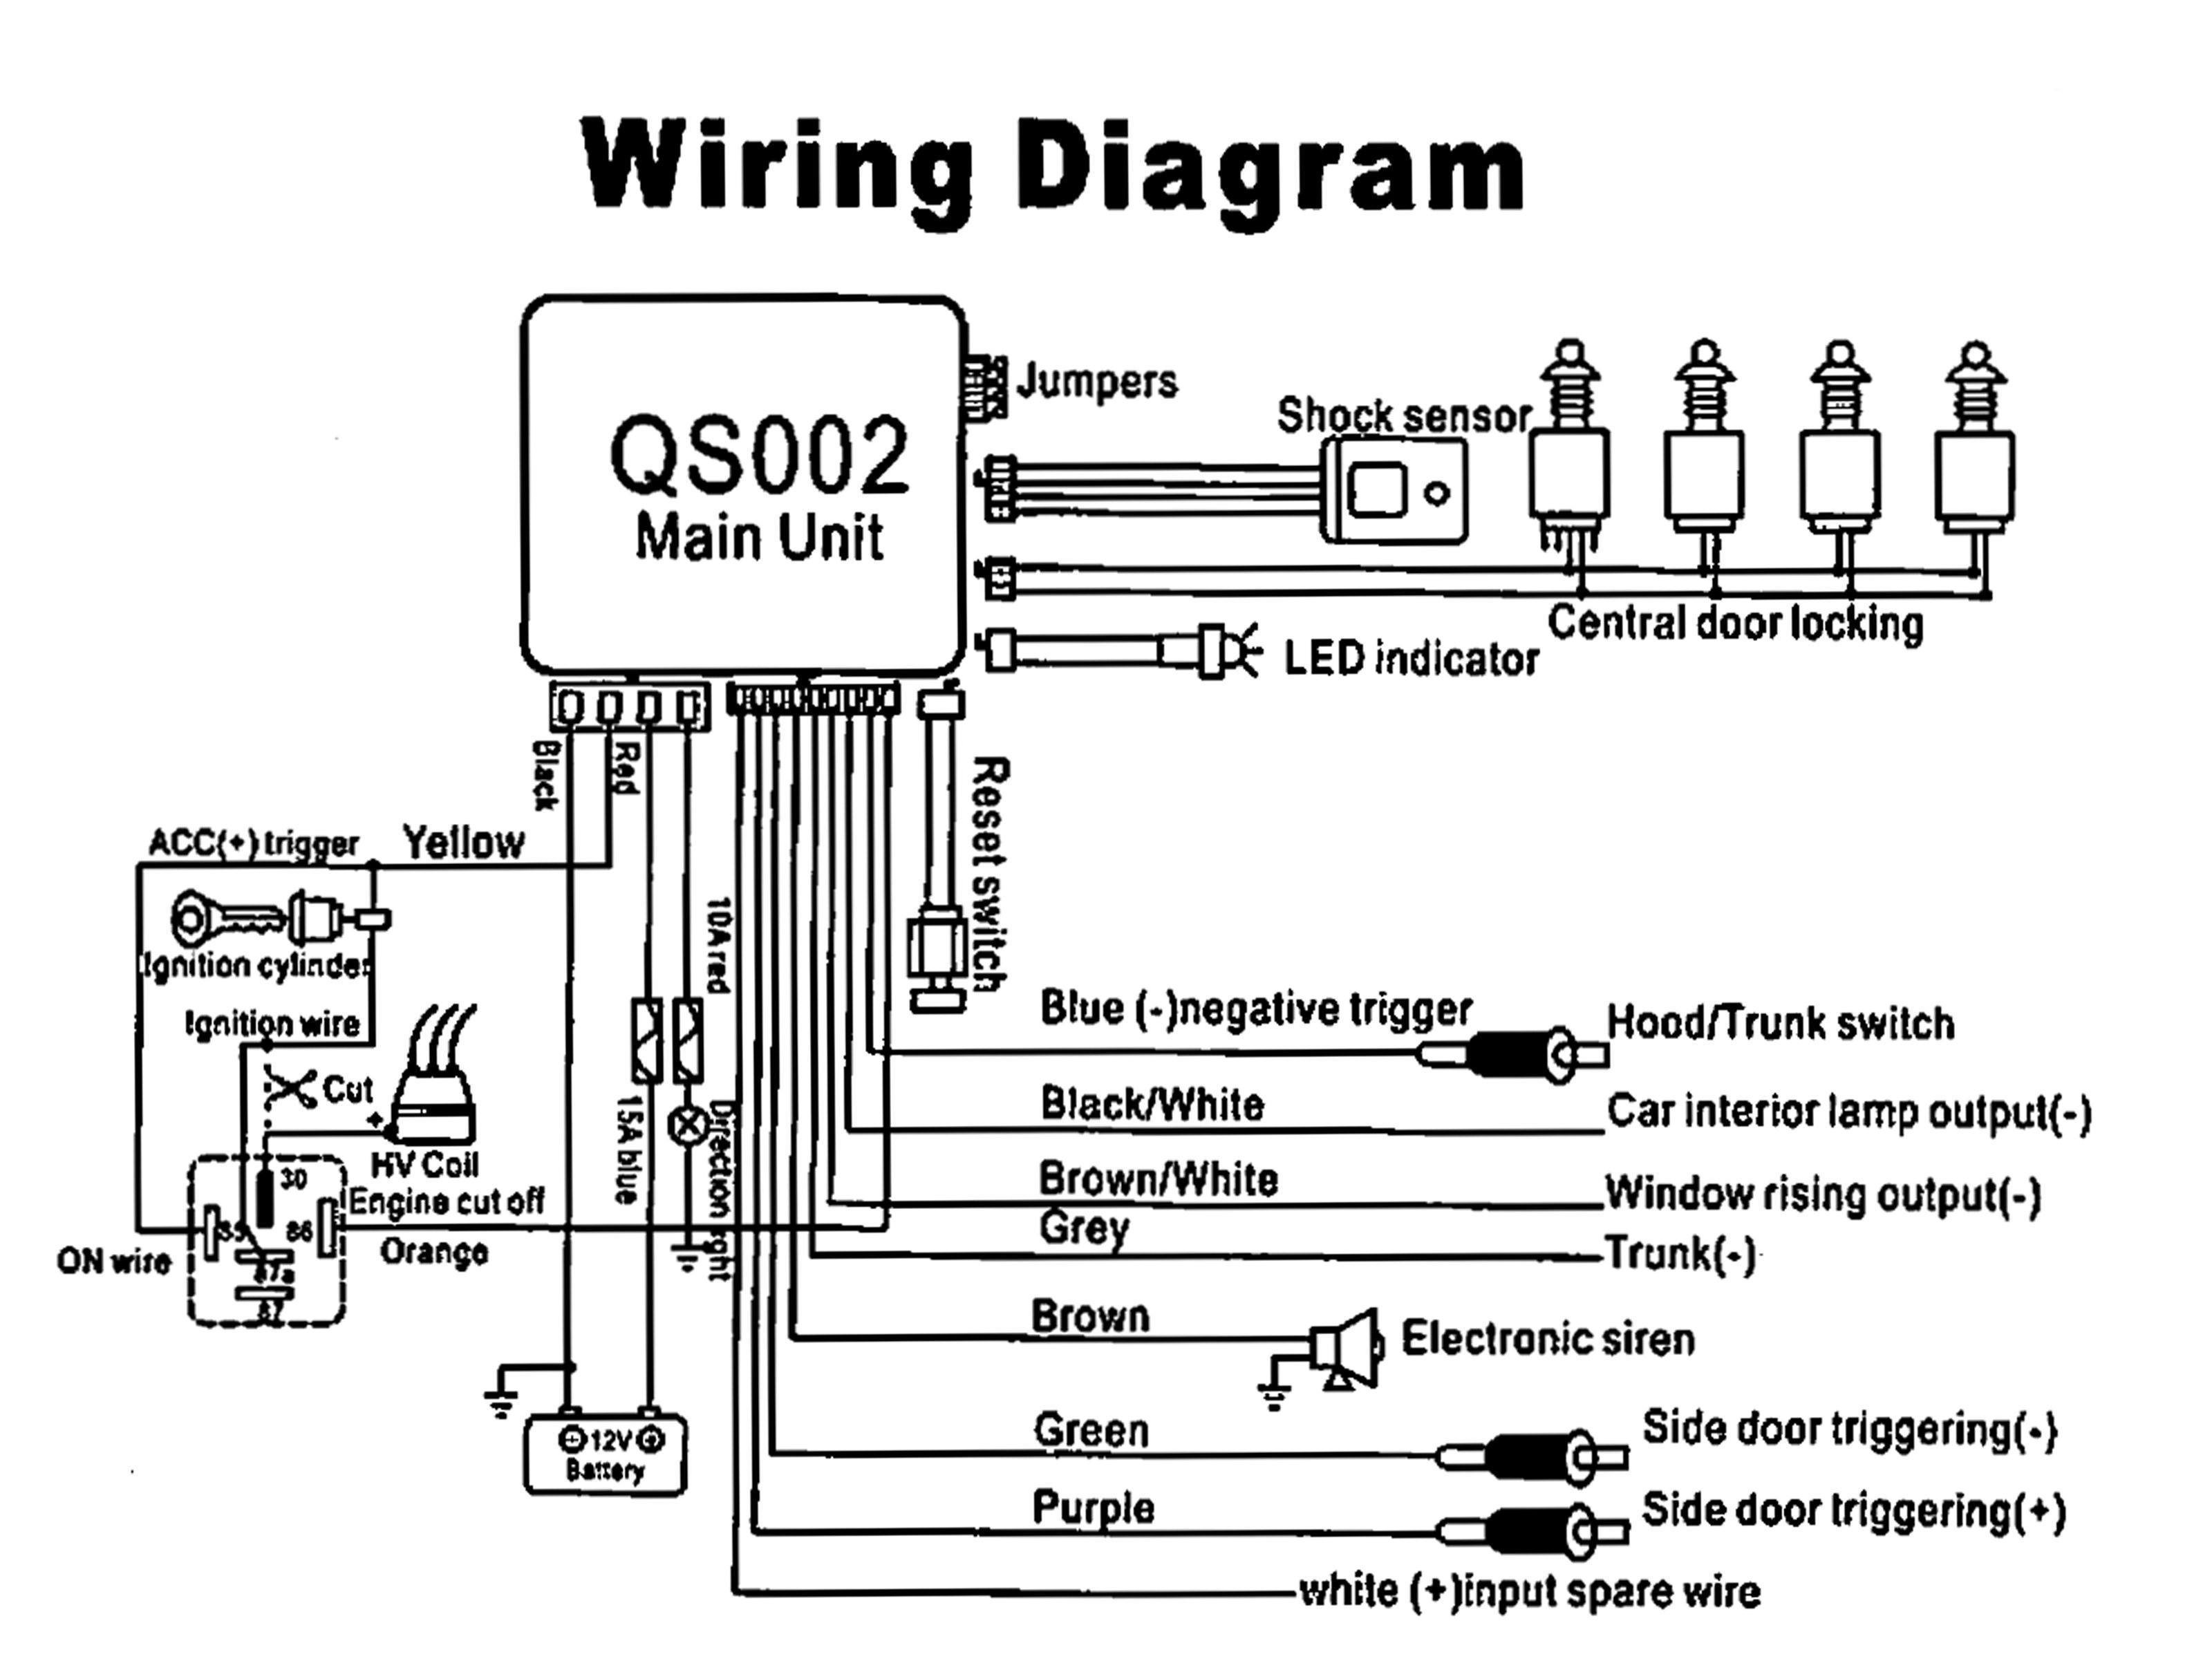 Factory Installed Wiring Schematic for A 2004 Gmc Trailer Diagram] Free Car Alarm Wiring Diagram Full Version Hd Of Factory Installed Wiring Schematic for A 2004 Gmc Trailer